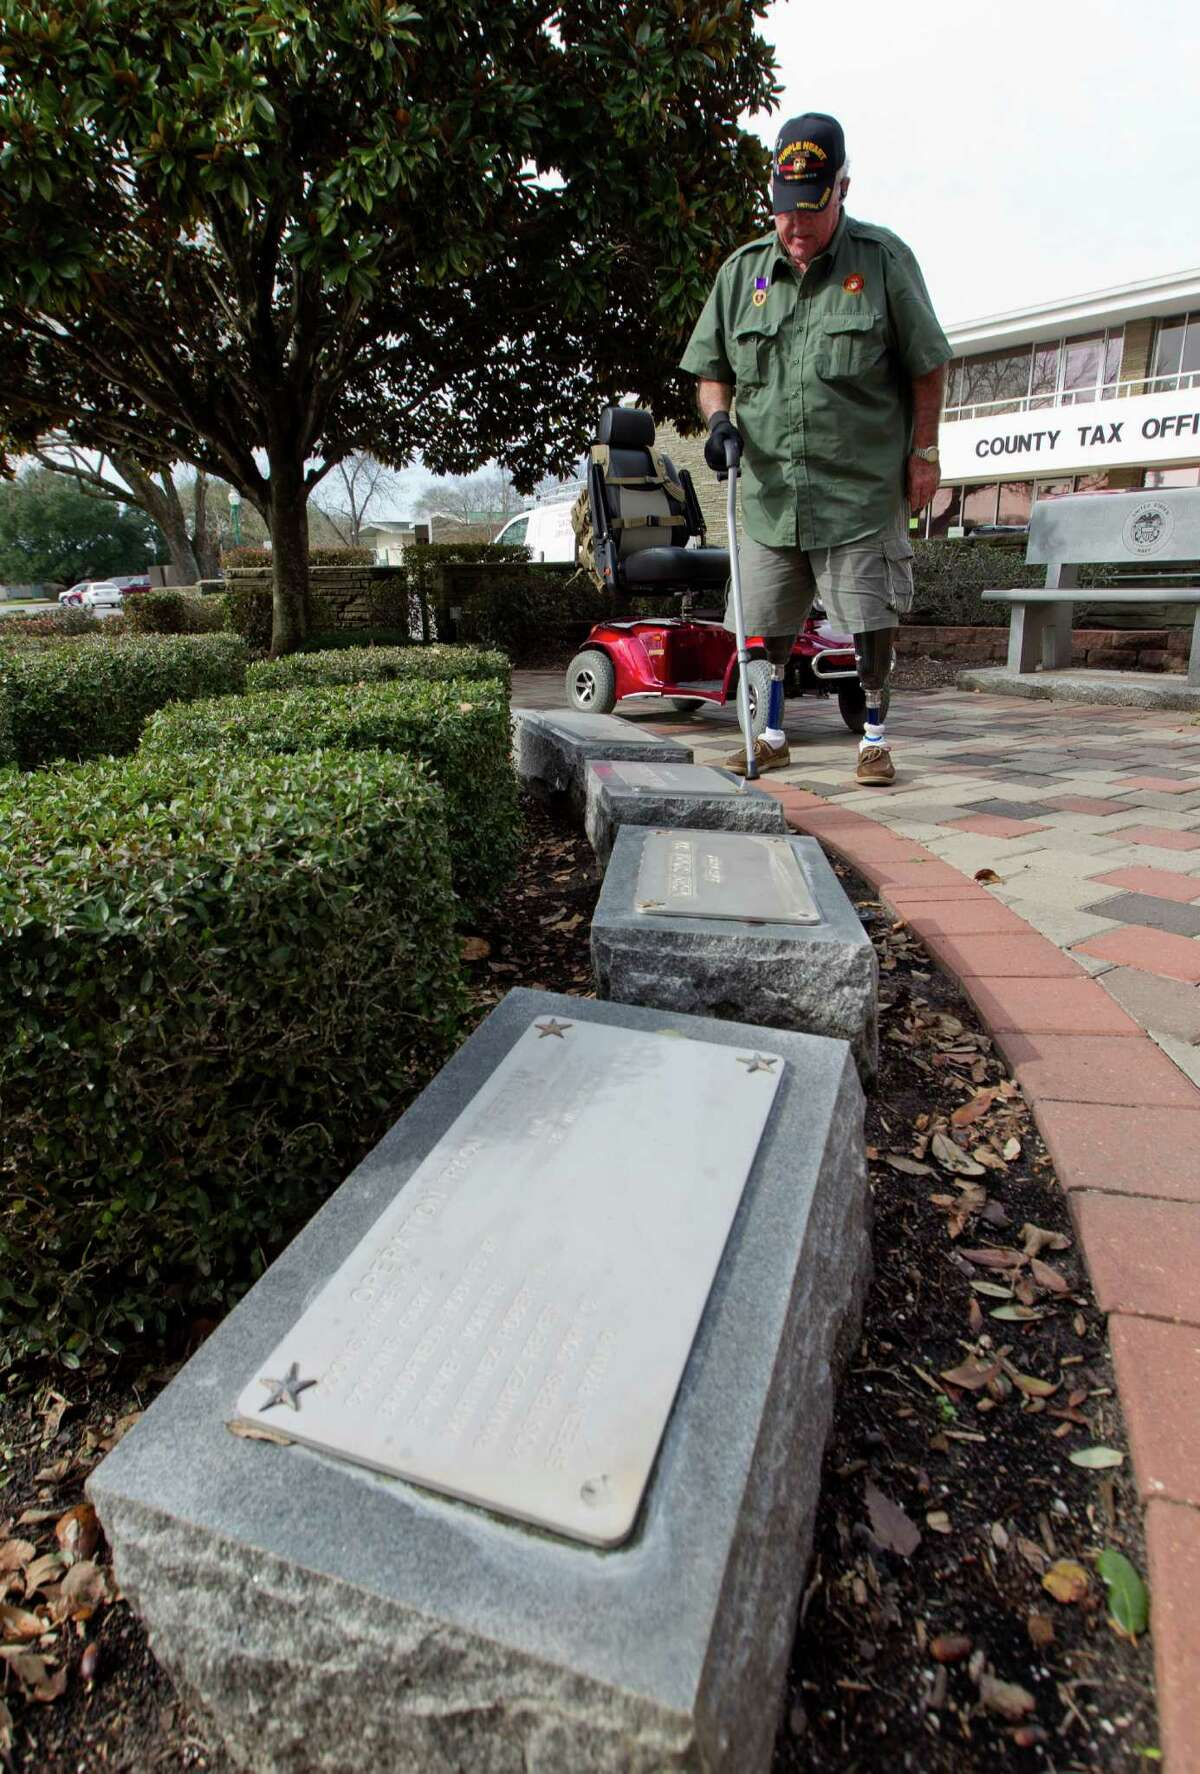 Retired United States Marine Corps Cpl. Jimmie Edwards III looks over former classmates lost serving in Vietnam during a visit to Montgomery County War Memorial Park Friday, Jan. 20, 2017, in Conroe. Edwards working to decommission the park in hopes to relocate it from its current location nestled between the county tax office and Conroe Tower to a larger, more visible and accessible location yet to be determined. The former Texas Representative and Montgomery County judge plans to meet with county leaders at Montgomery County Commissioners Court Jan. 24. Edwards lost both legs after being hit by a mortar shell while serving in Vietnam in 1969.